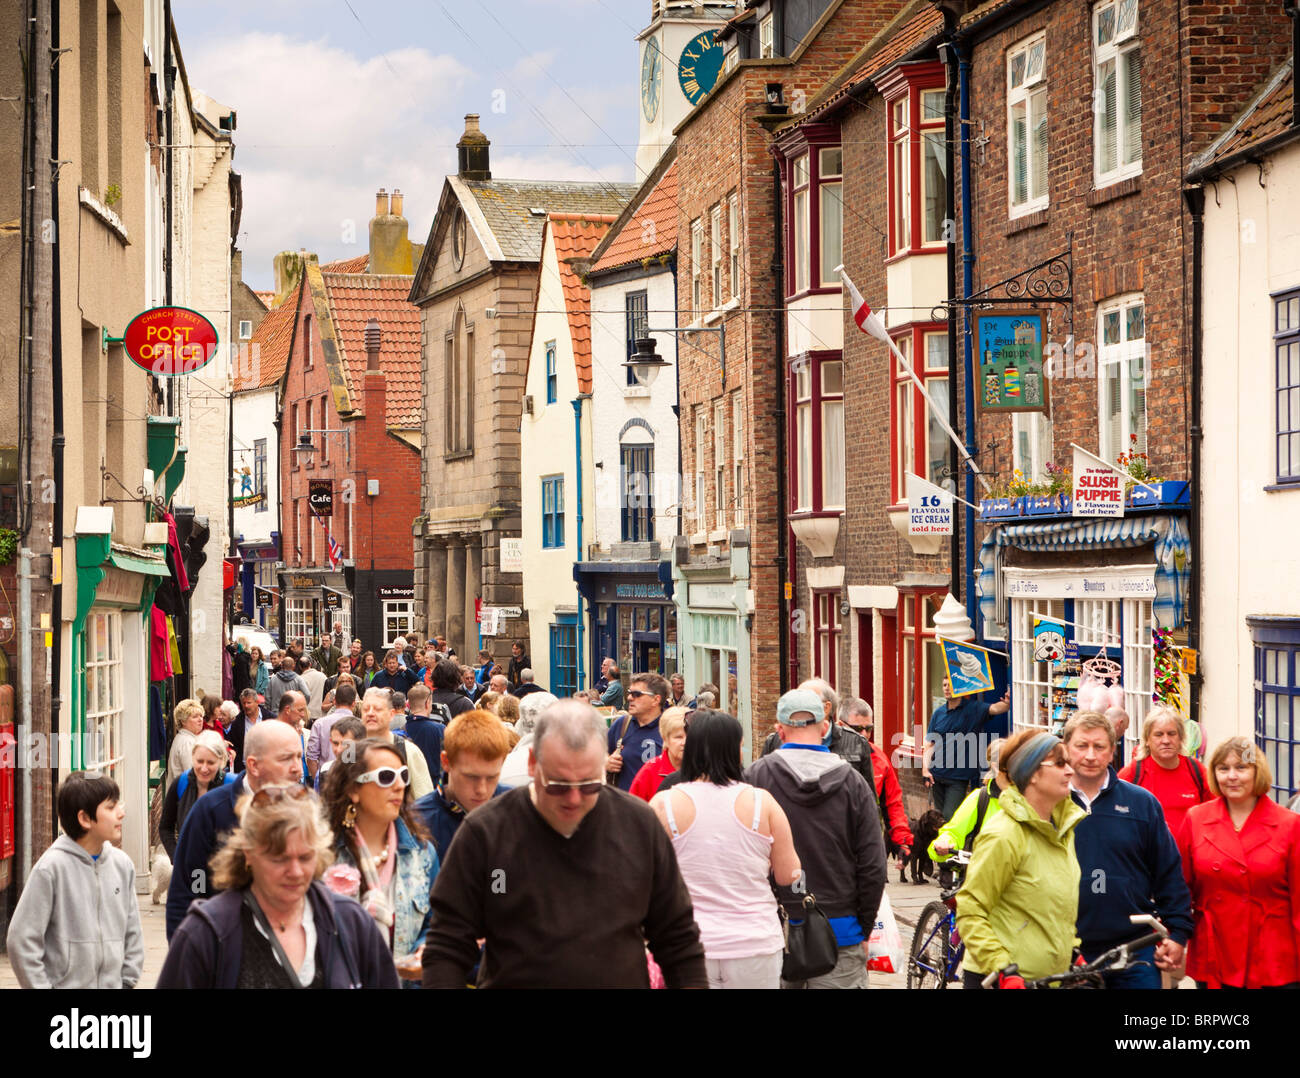 Crowded busy shopping street Whitby, North Yorkshire, England, UK - Stock Image